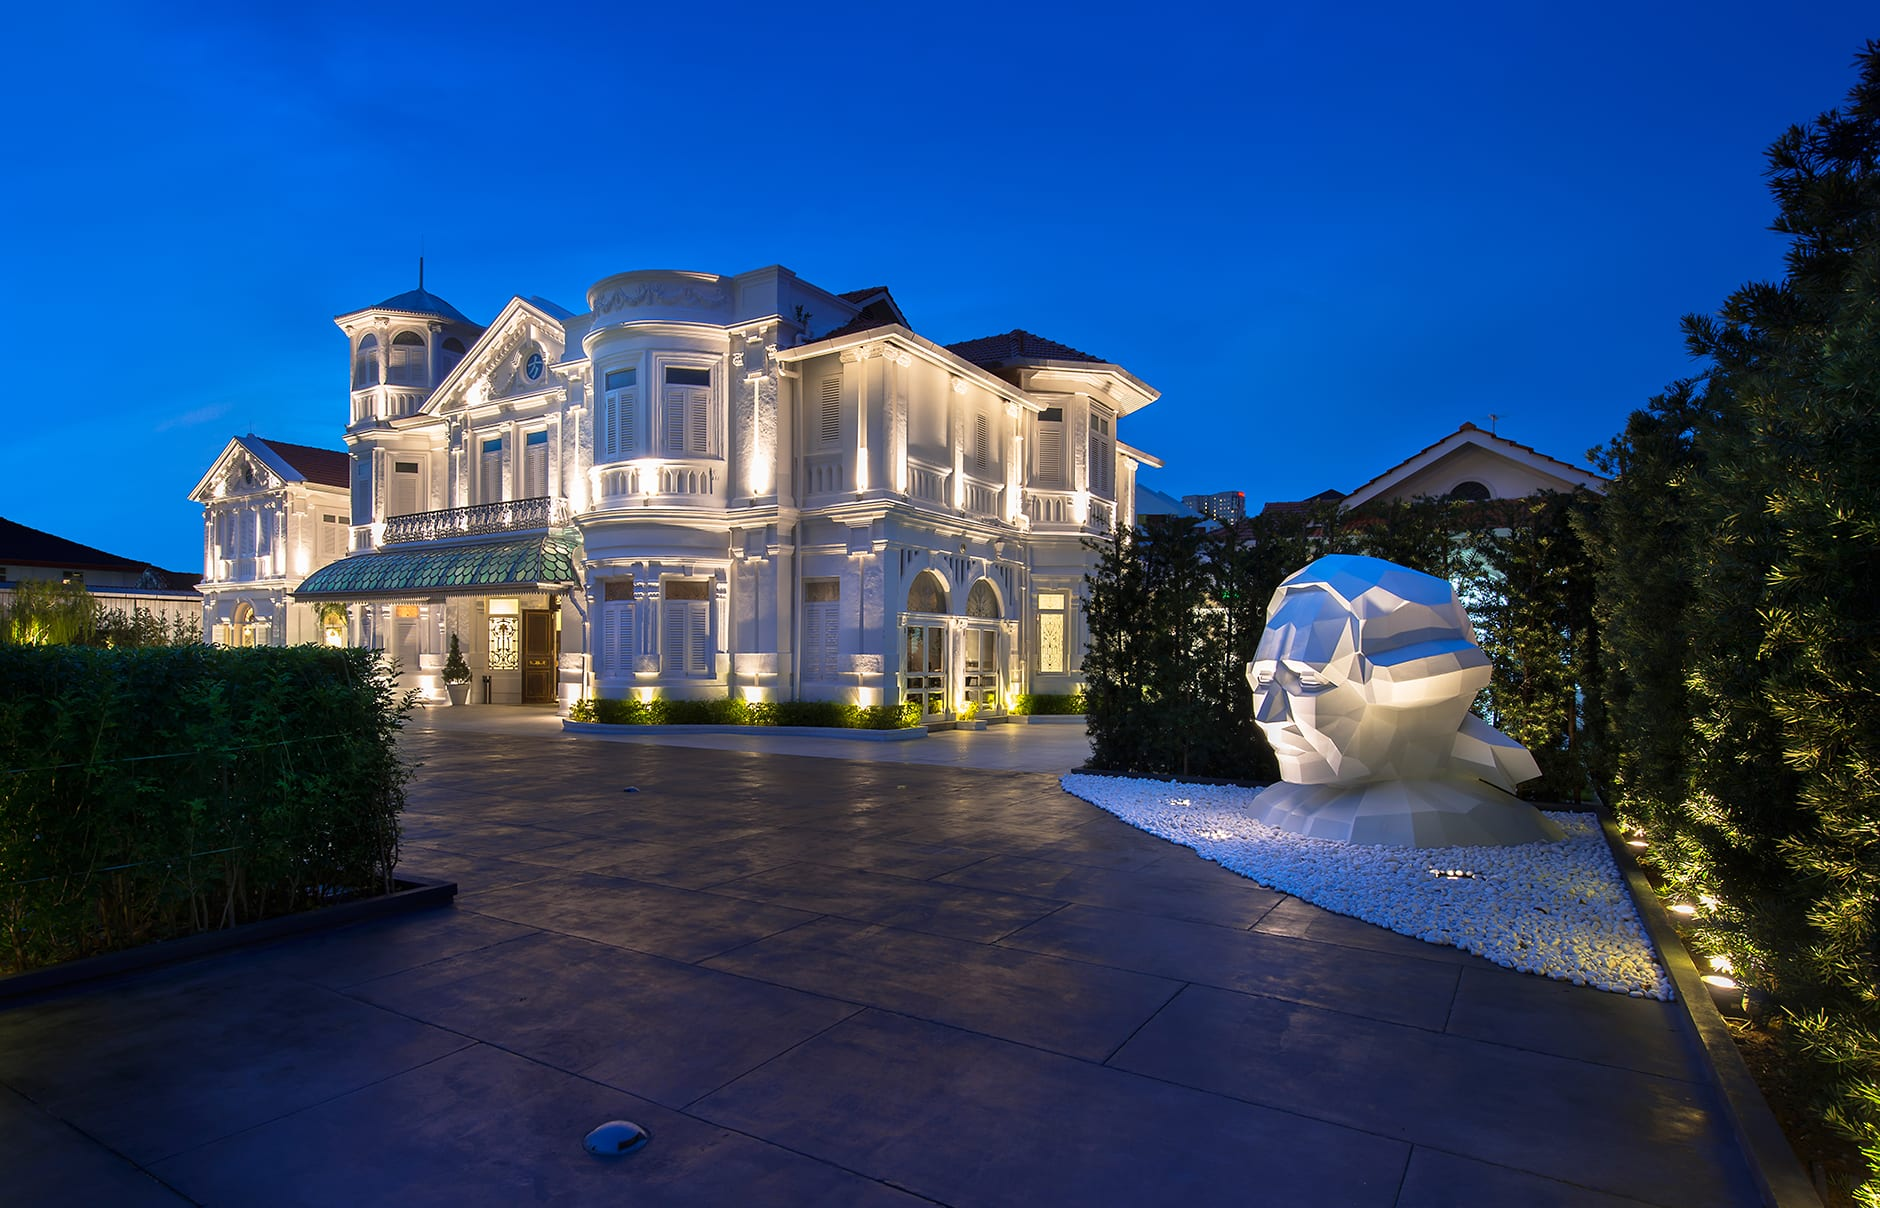 Macalister Mansion, Georgetown, Penang, Malaysia. © Macalister Mansion